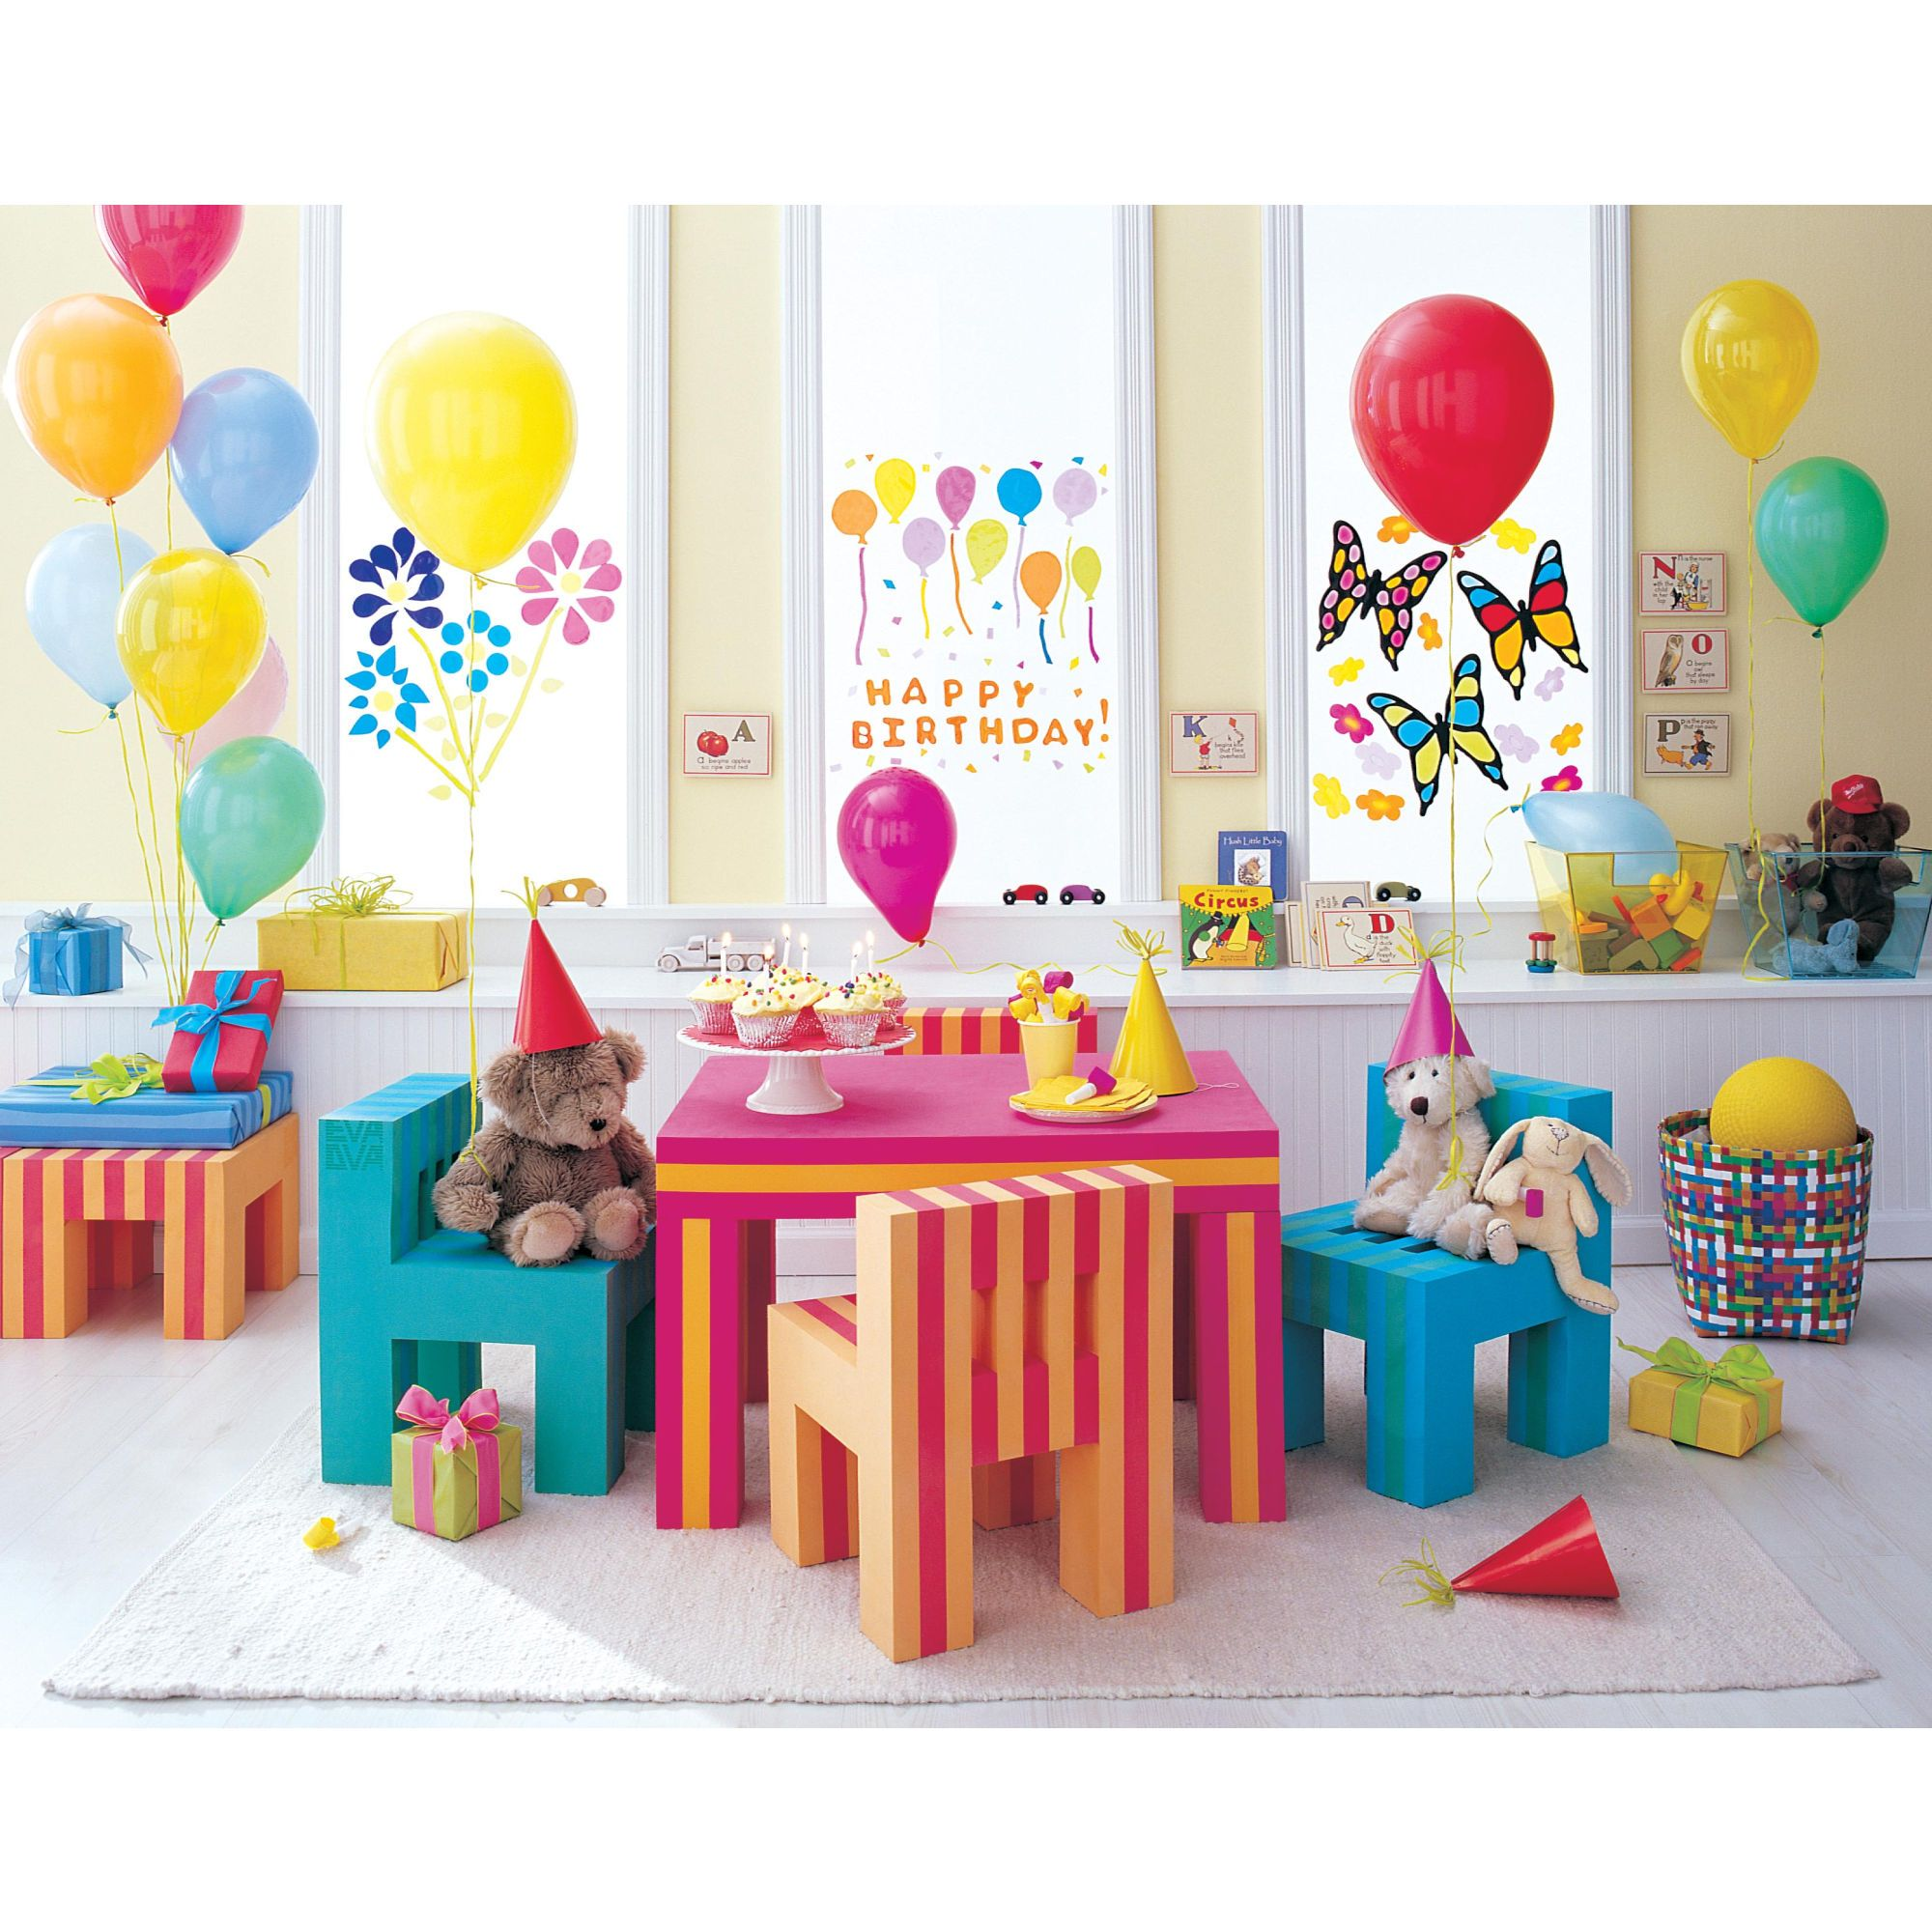 Foam baby chairs - Offi Eva Kids Foam Table And Chair Set In